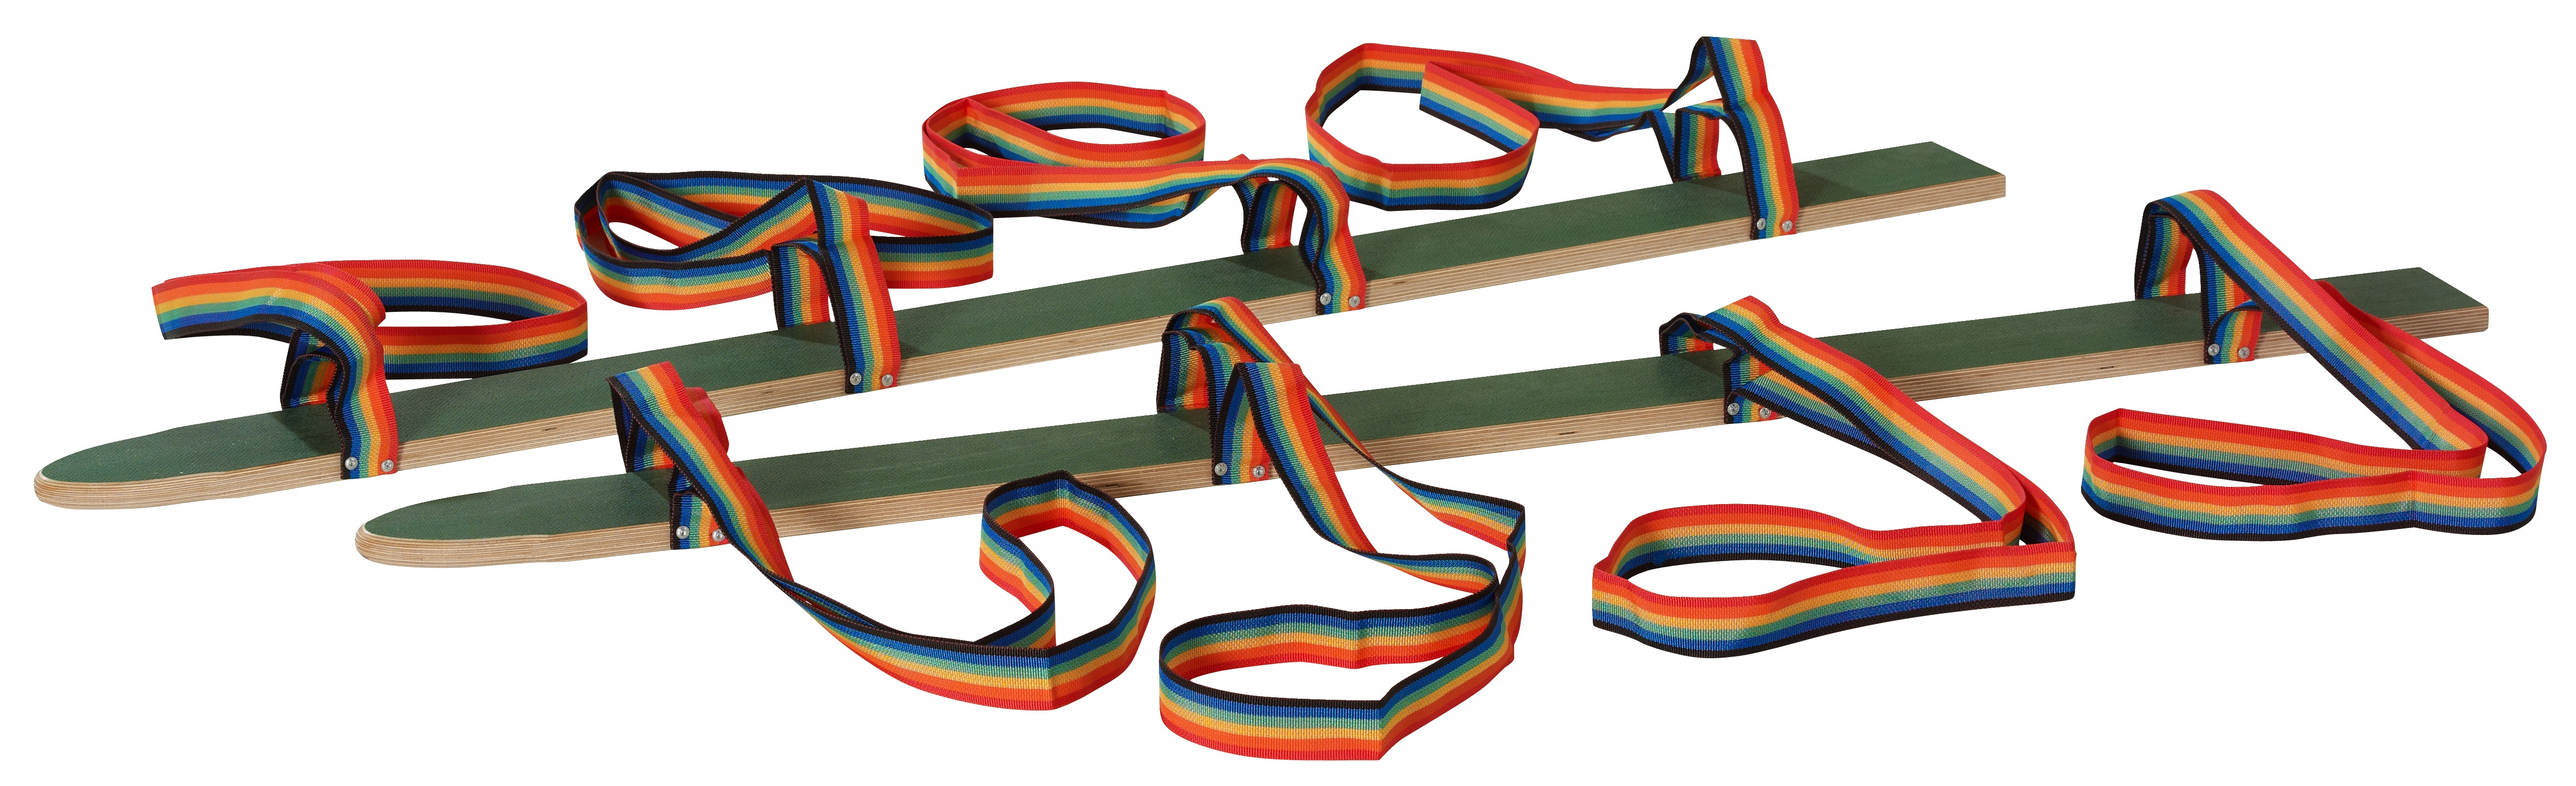 "Pedalo ""Hand/Foot Loop"" Dry Skis Length 160 cm, for 4 people"